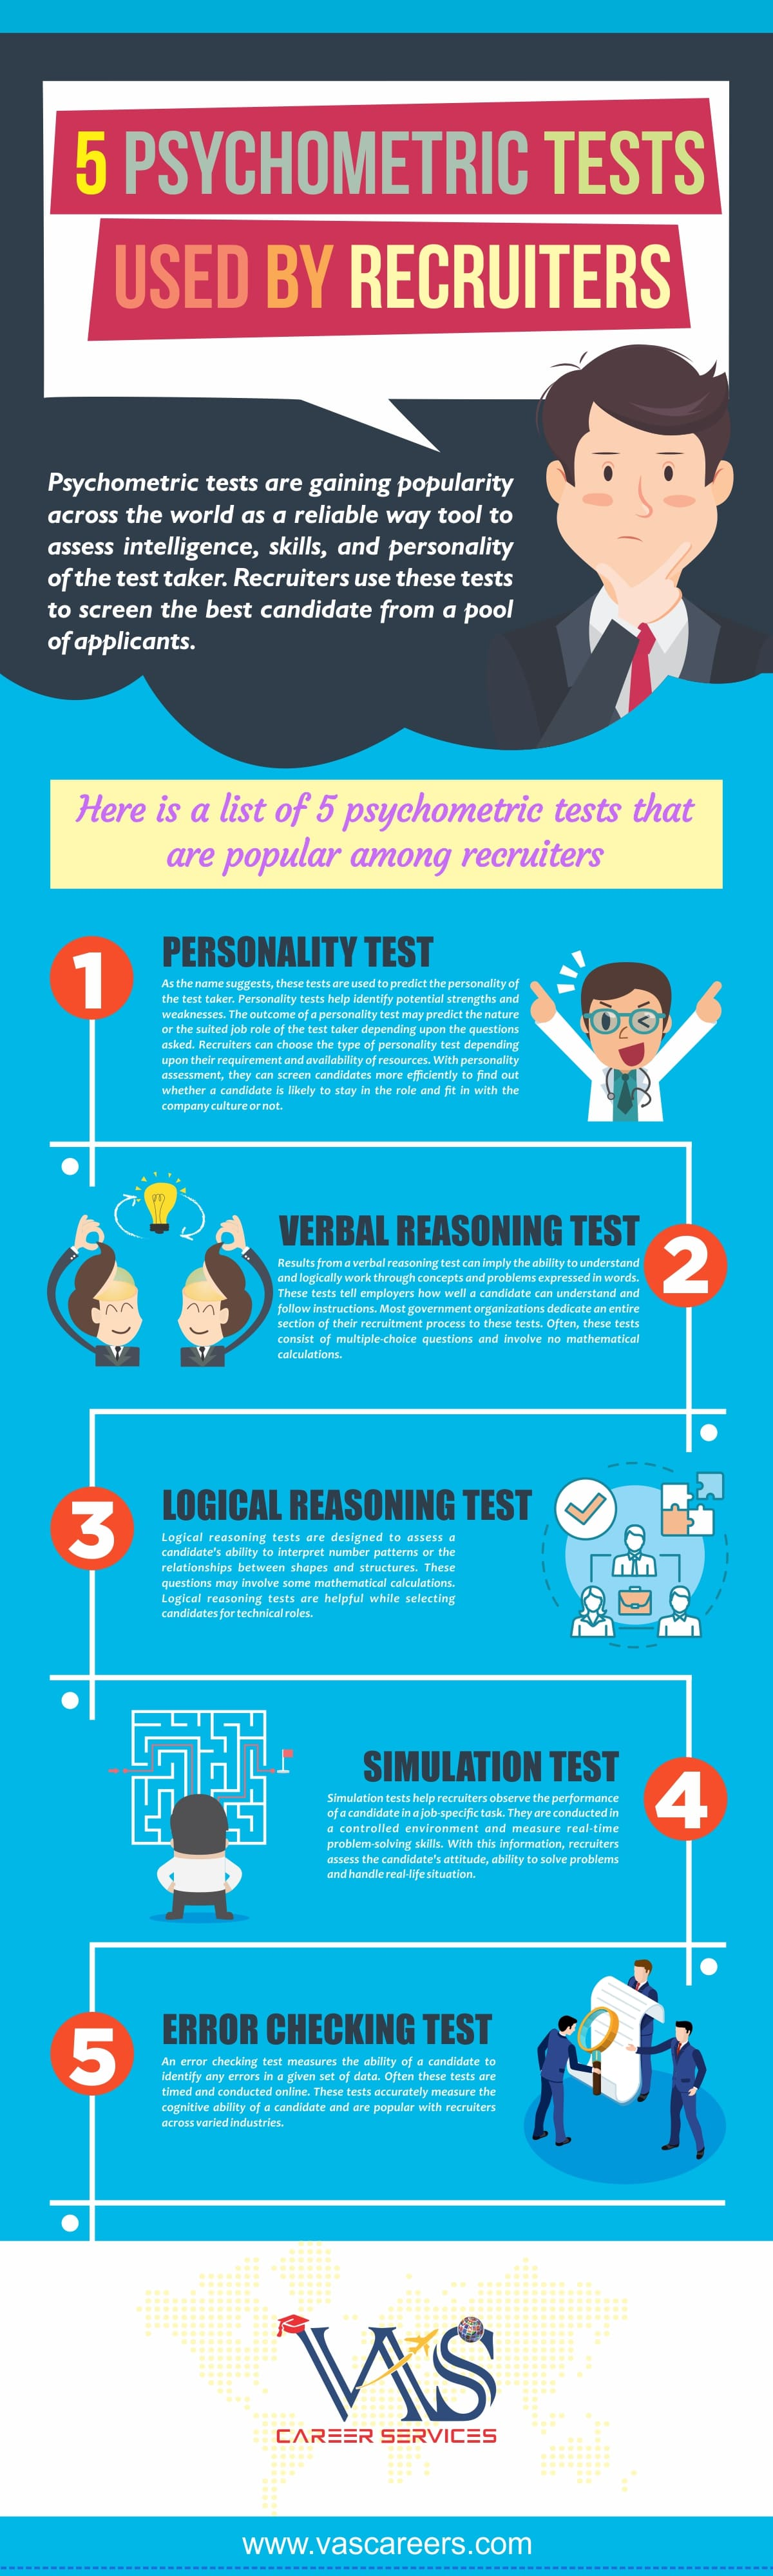 Types of Psychometric Tests